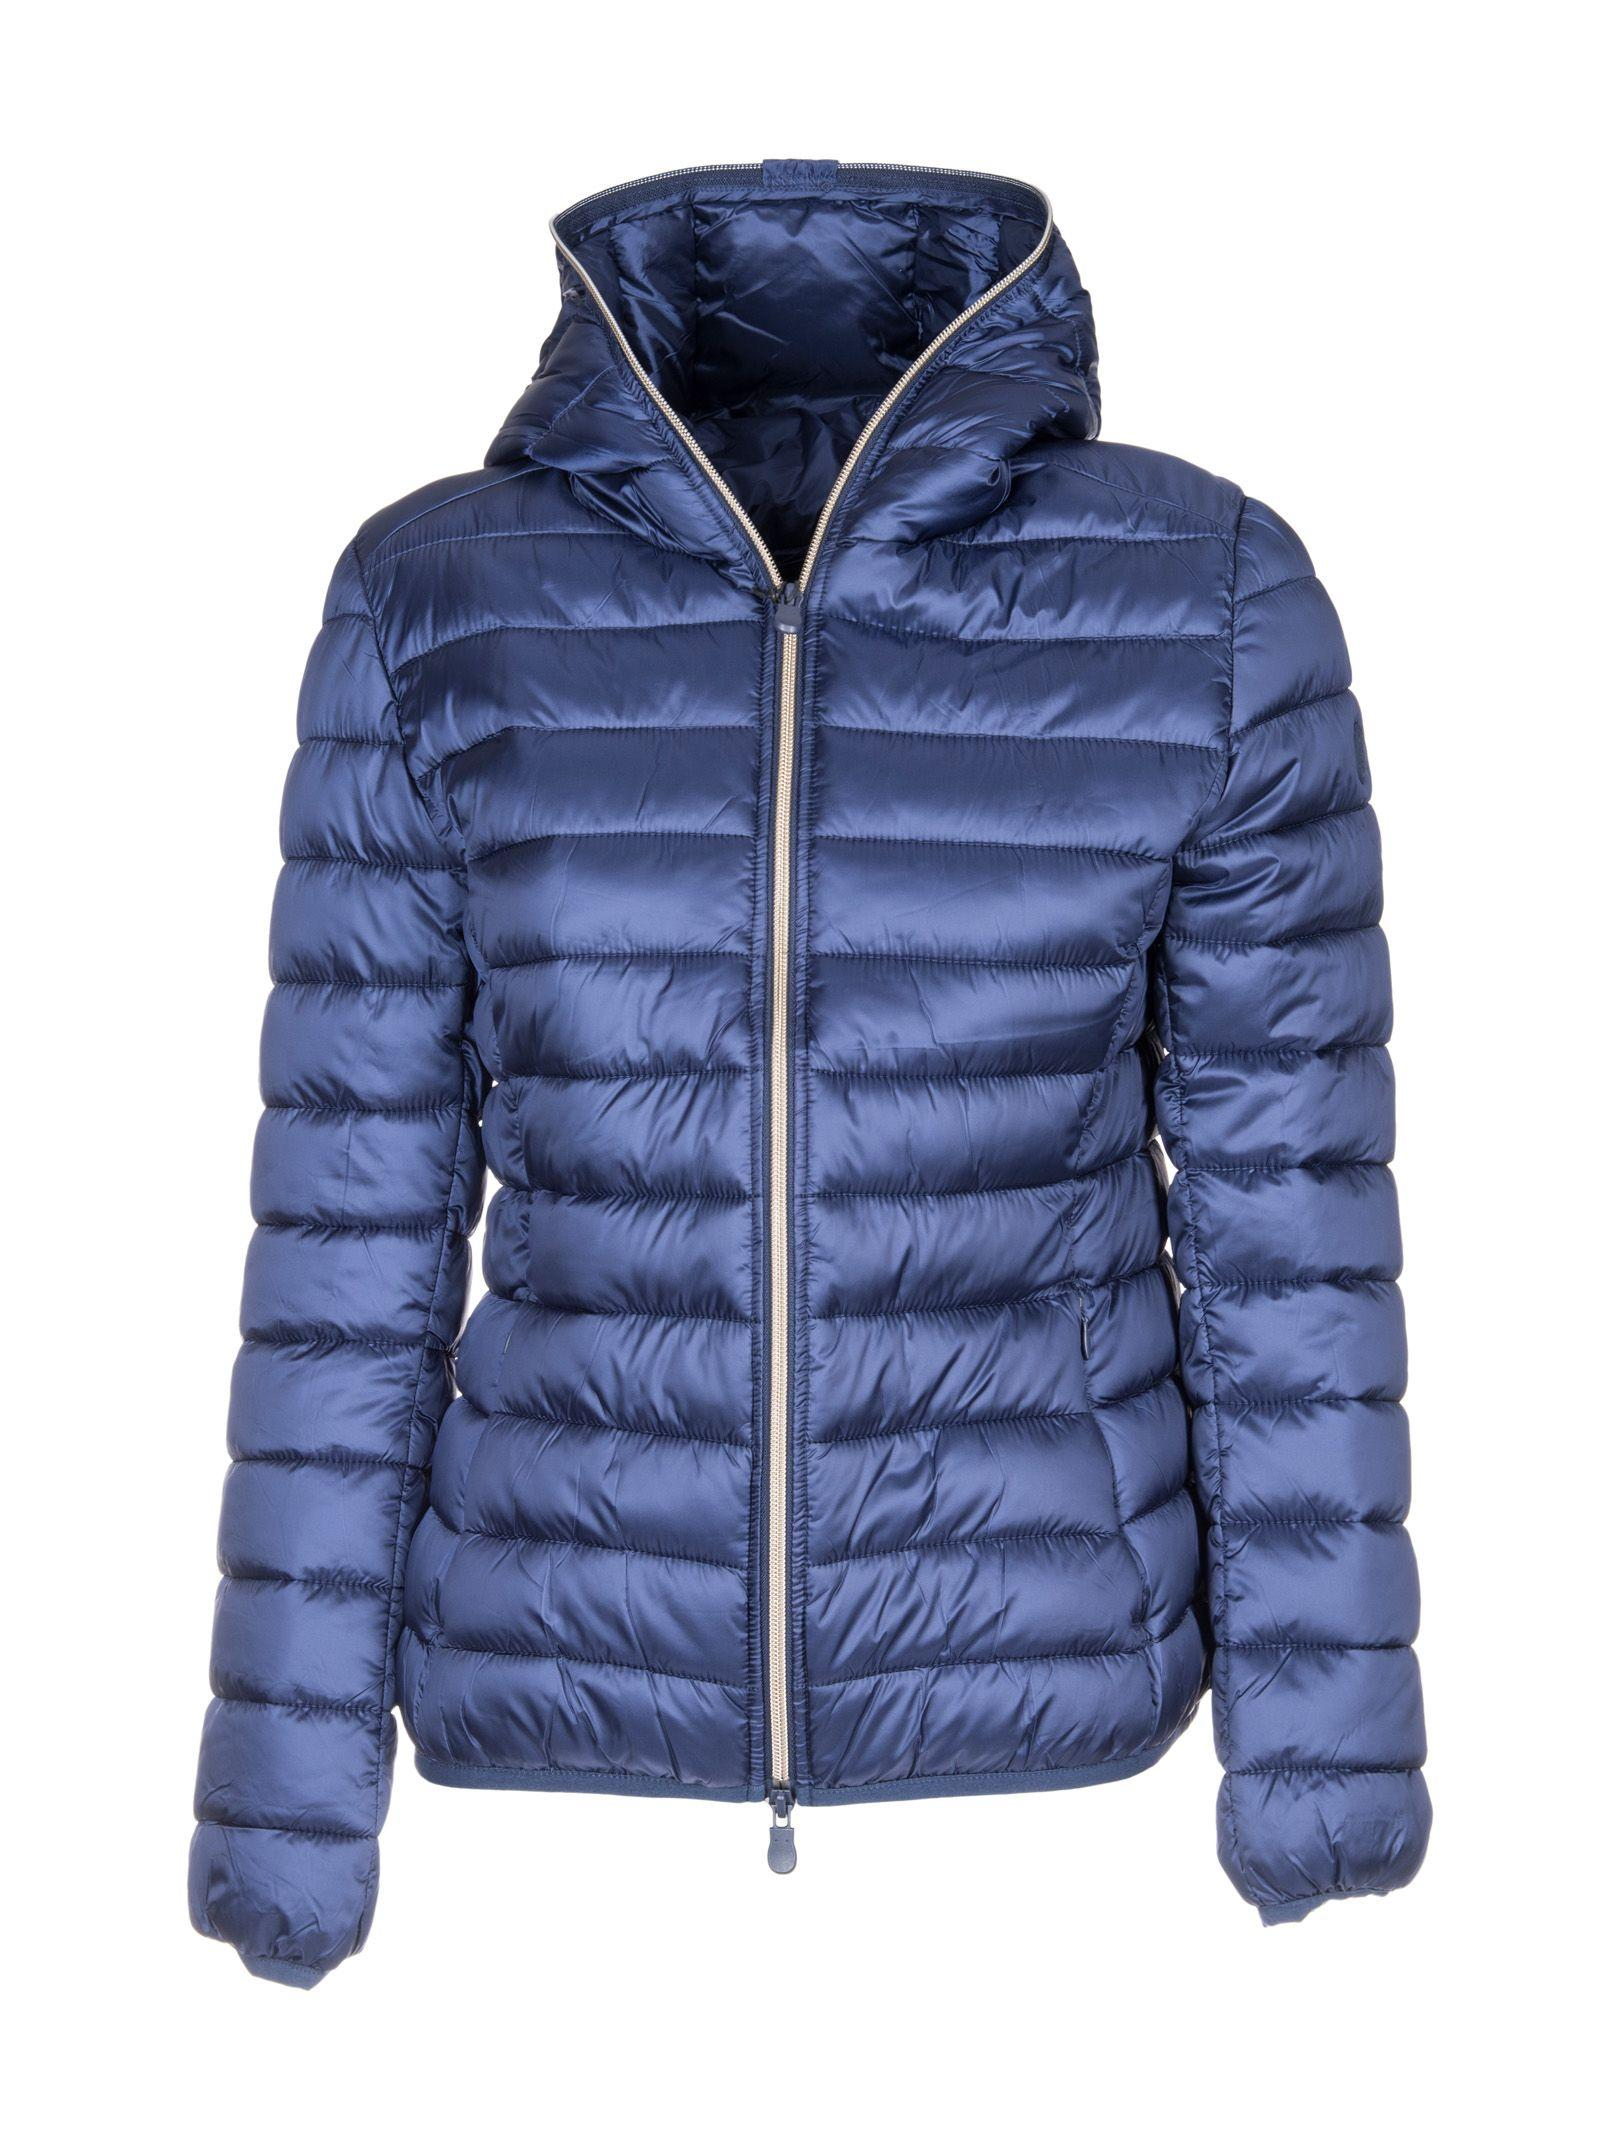 Save The Duck Zip Up Down Jacket In Blue